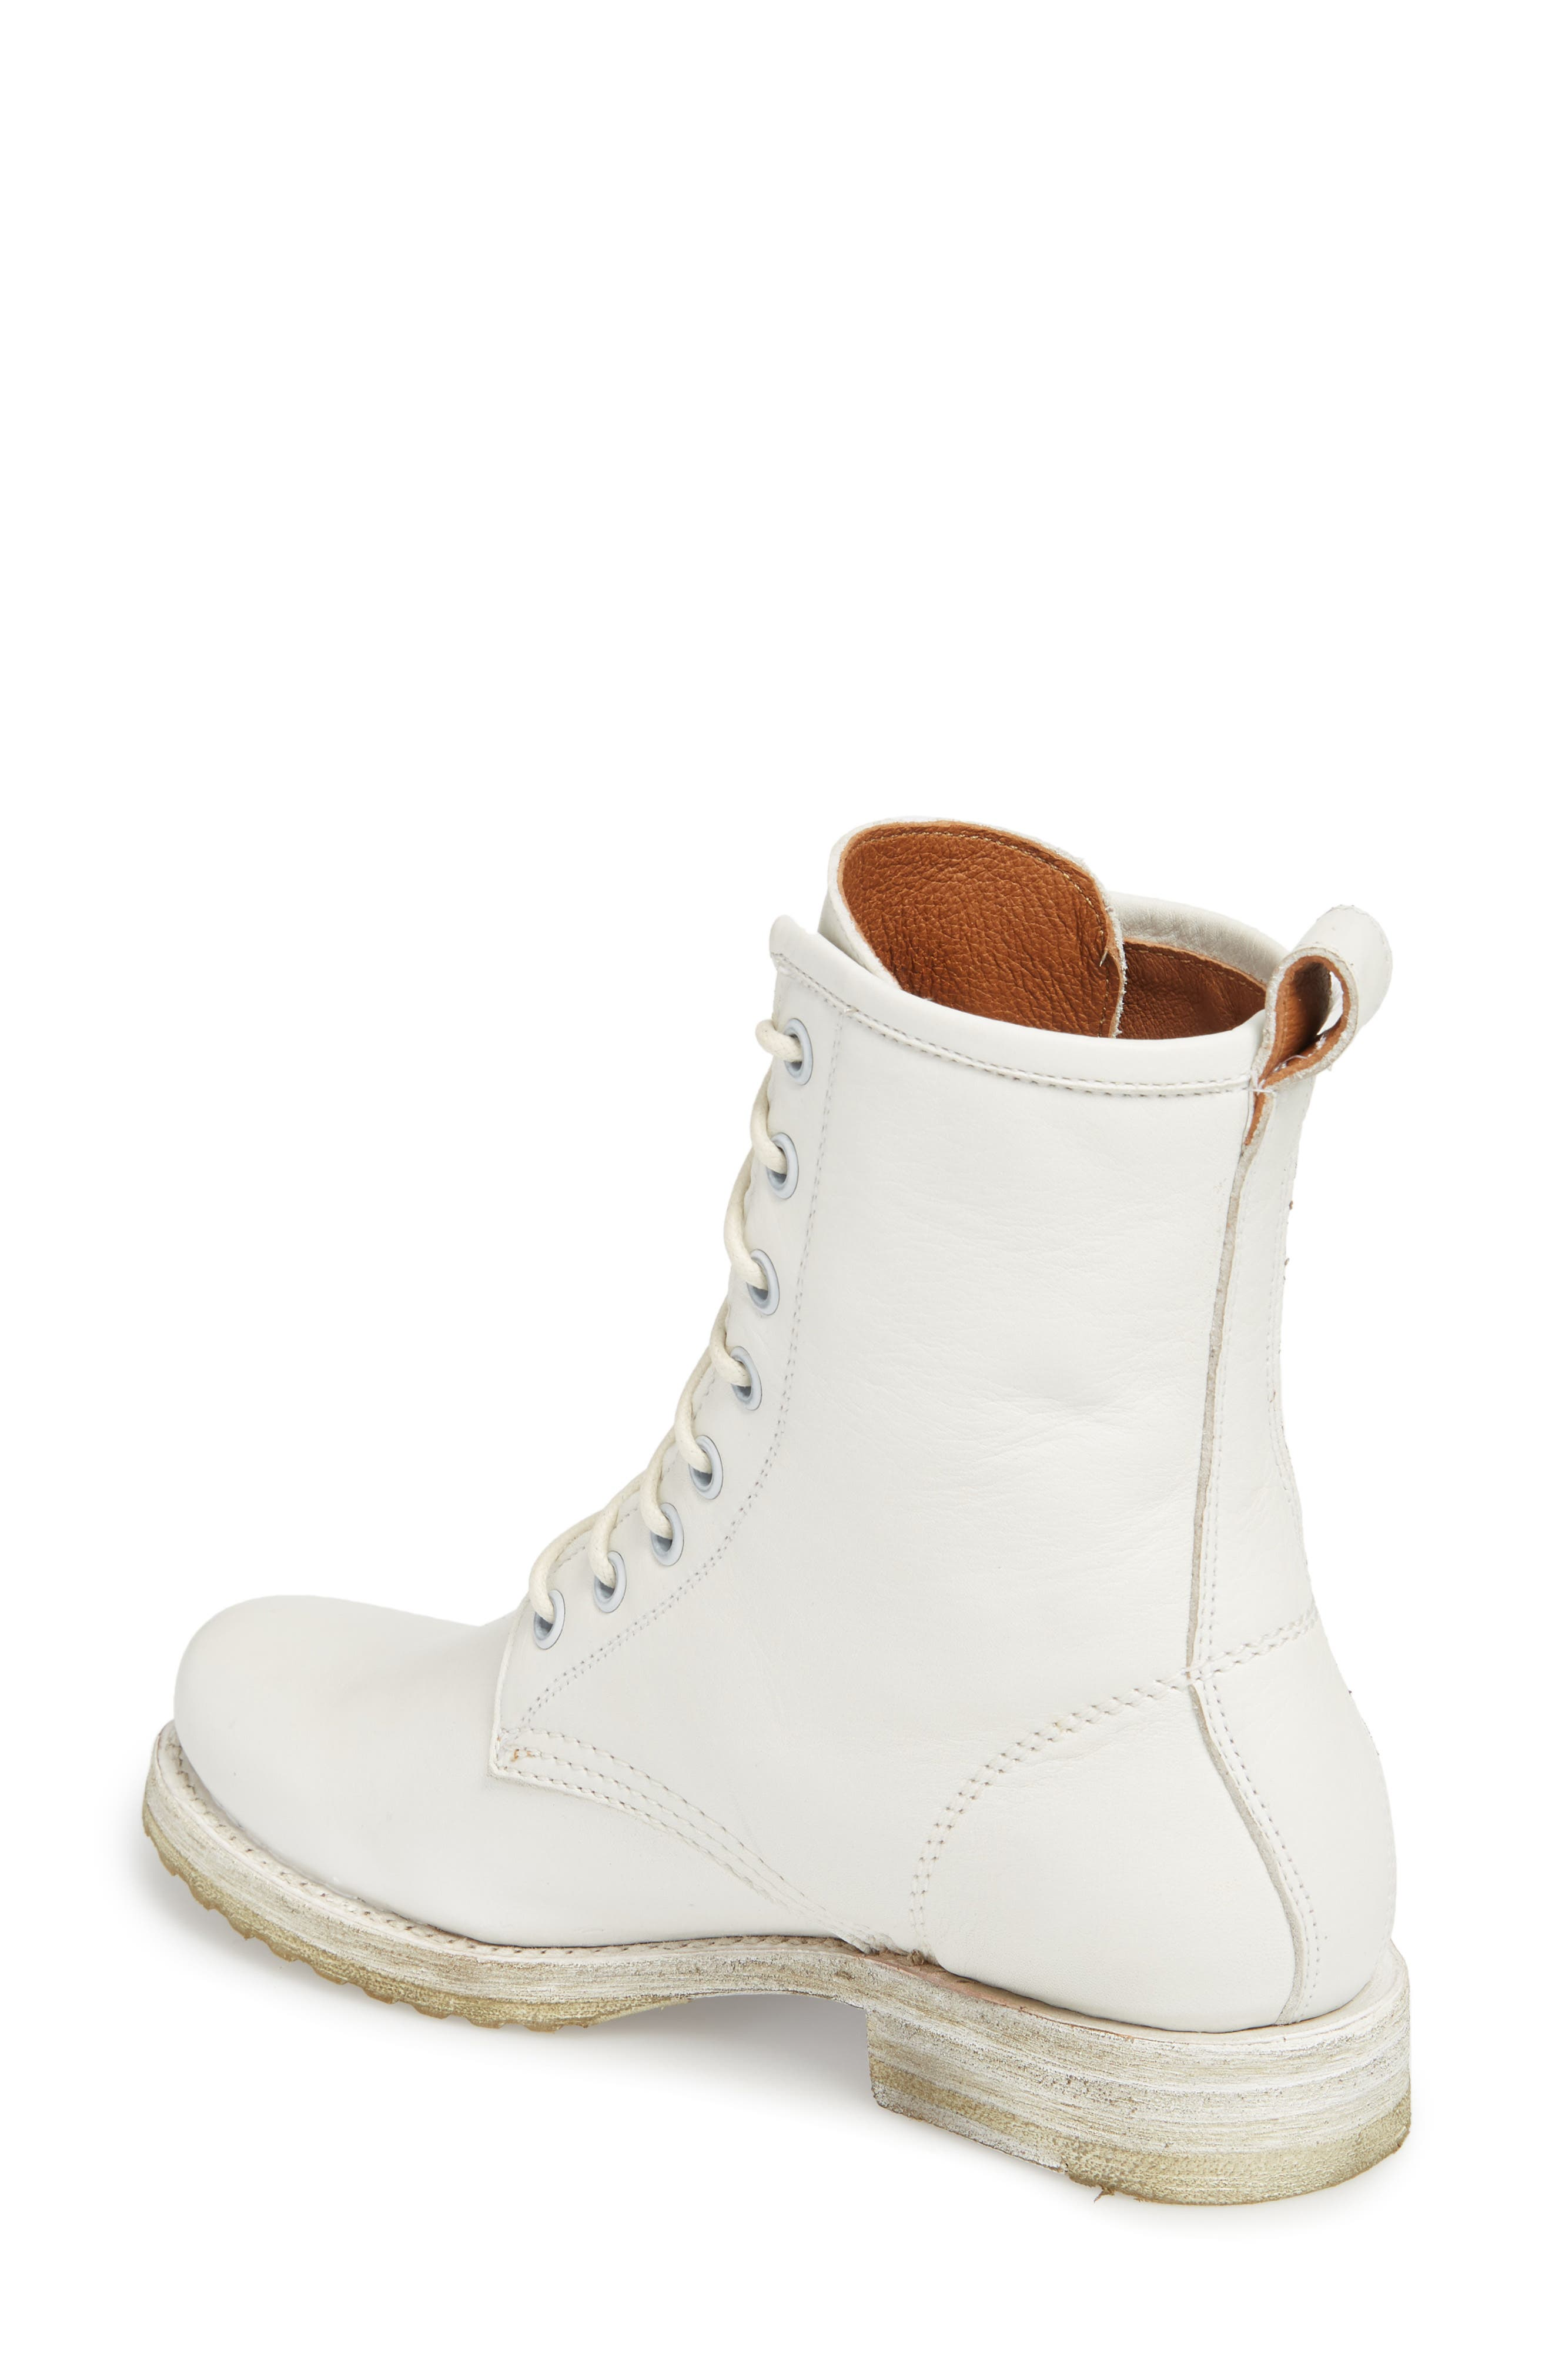 'Veronica Combat' Boot,                             Alternate thumbnail 2, color,                             WHITE LEATHER